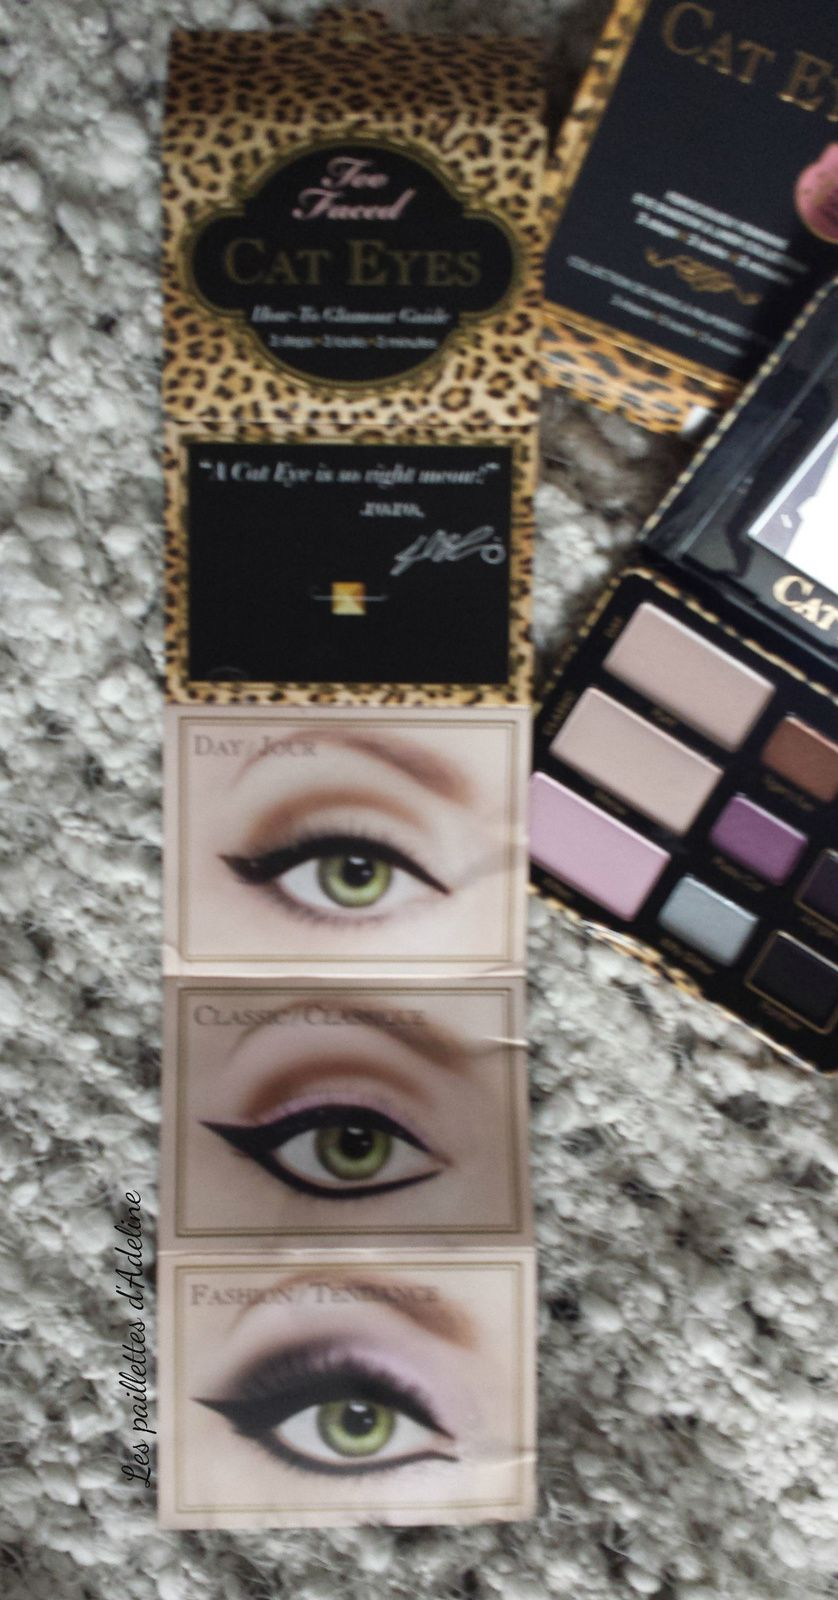 La Cat's eyes de chez Too Faced